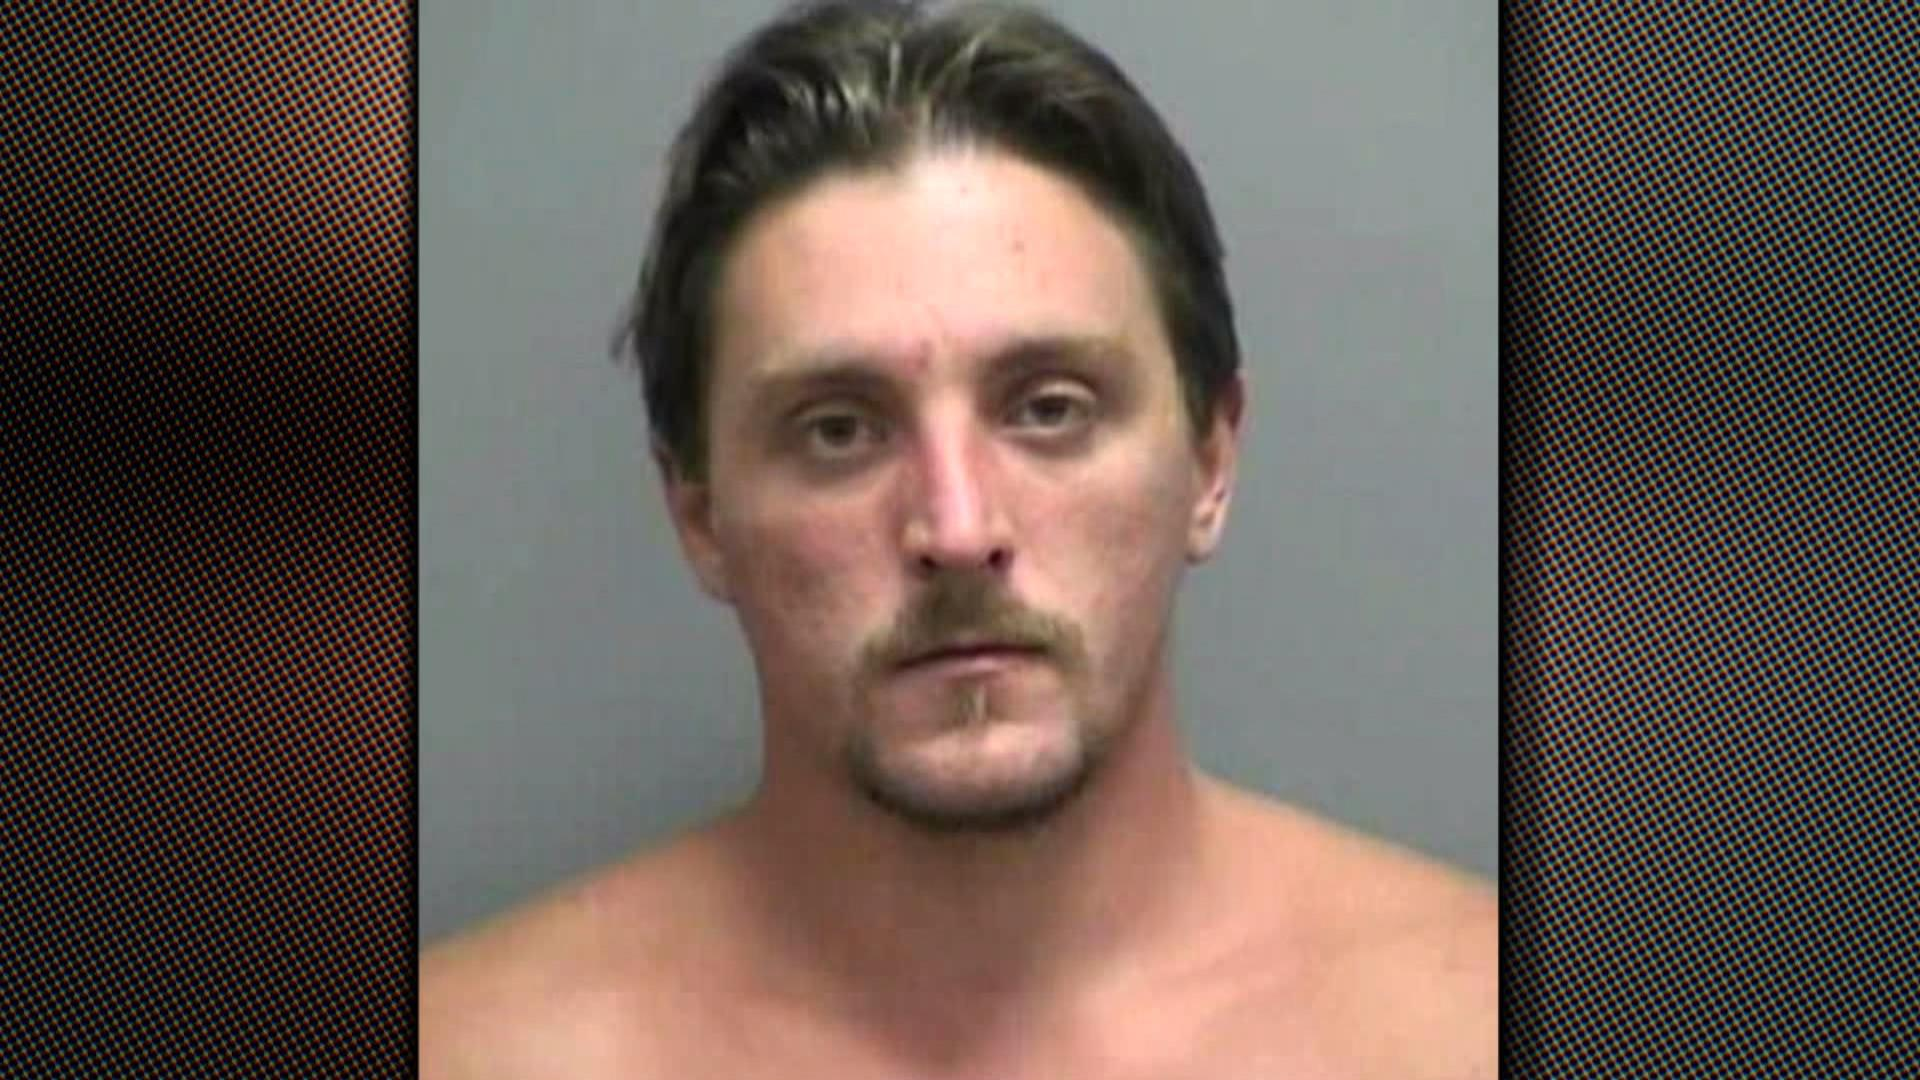 Manhunt Intensifies for Joseph Jakubowski, Man Who Allegedly Stole Guns and Mailed Manifesto to Trump